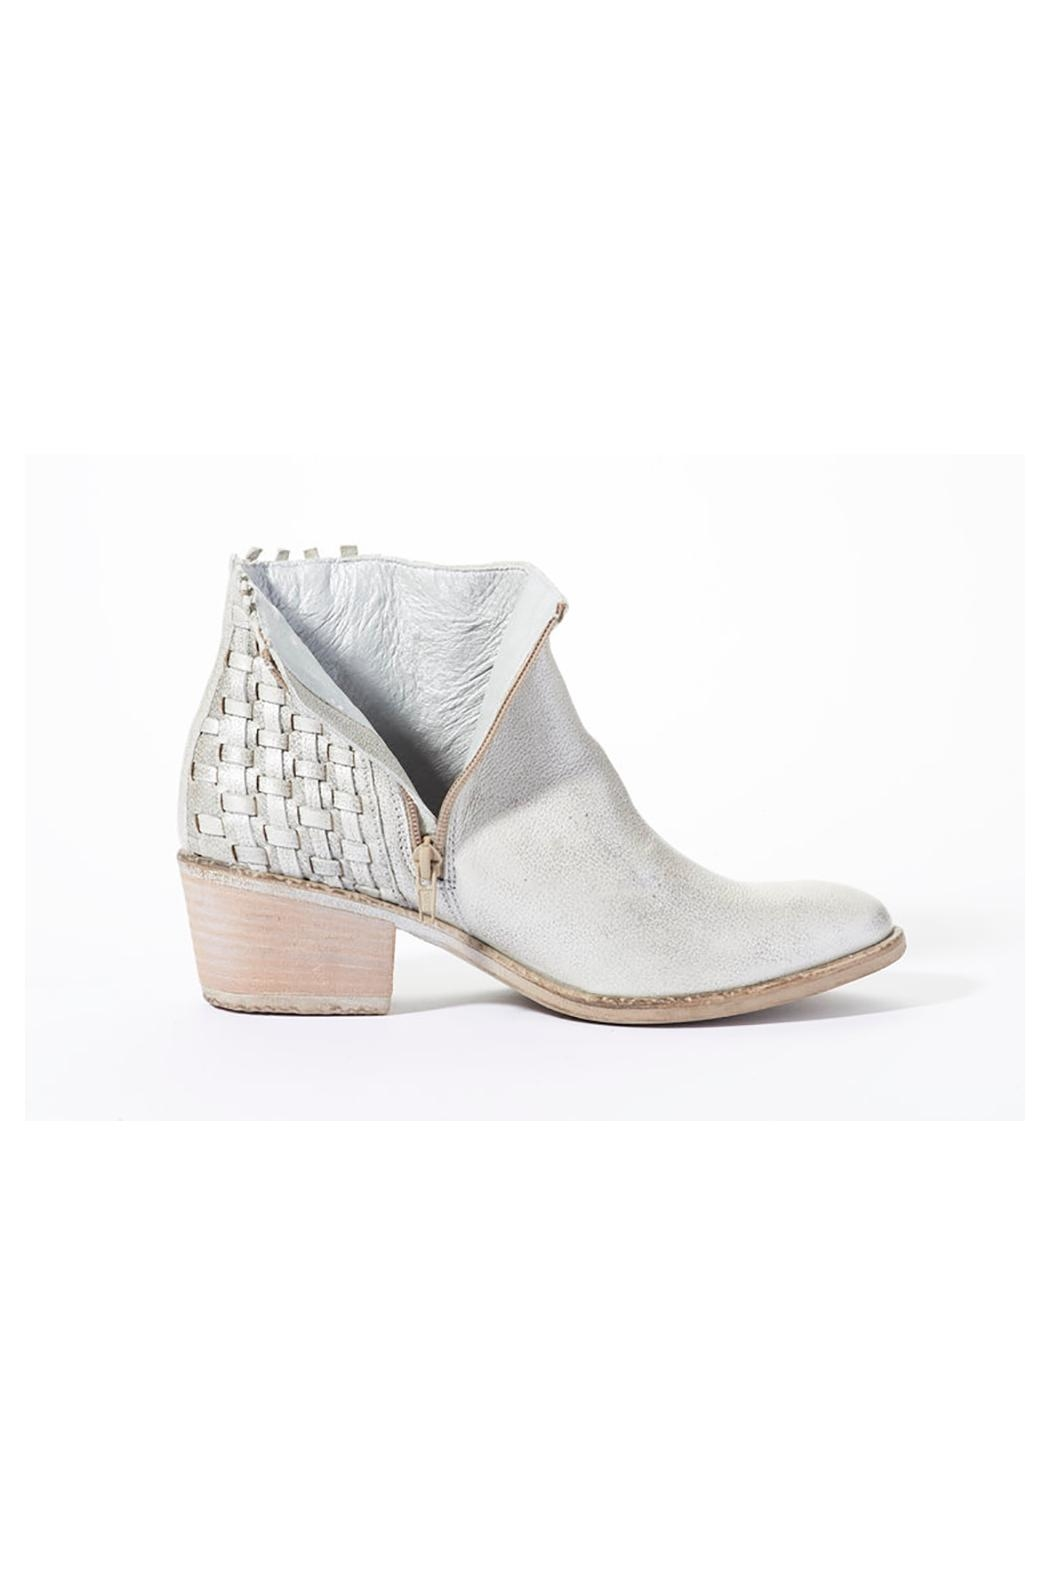 Rebel With Cause Silver Braided Bootie - Side Cropped Image